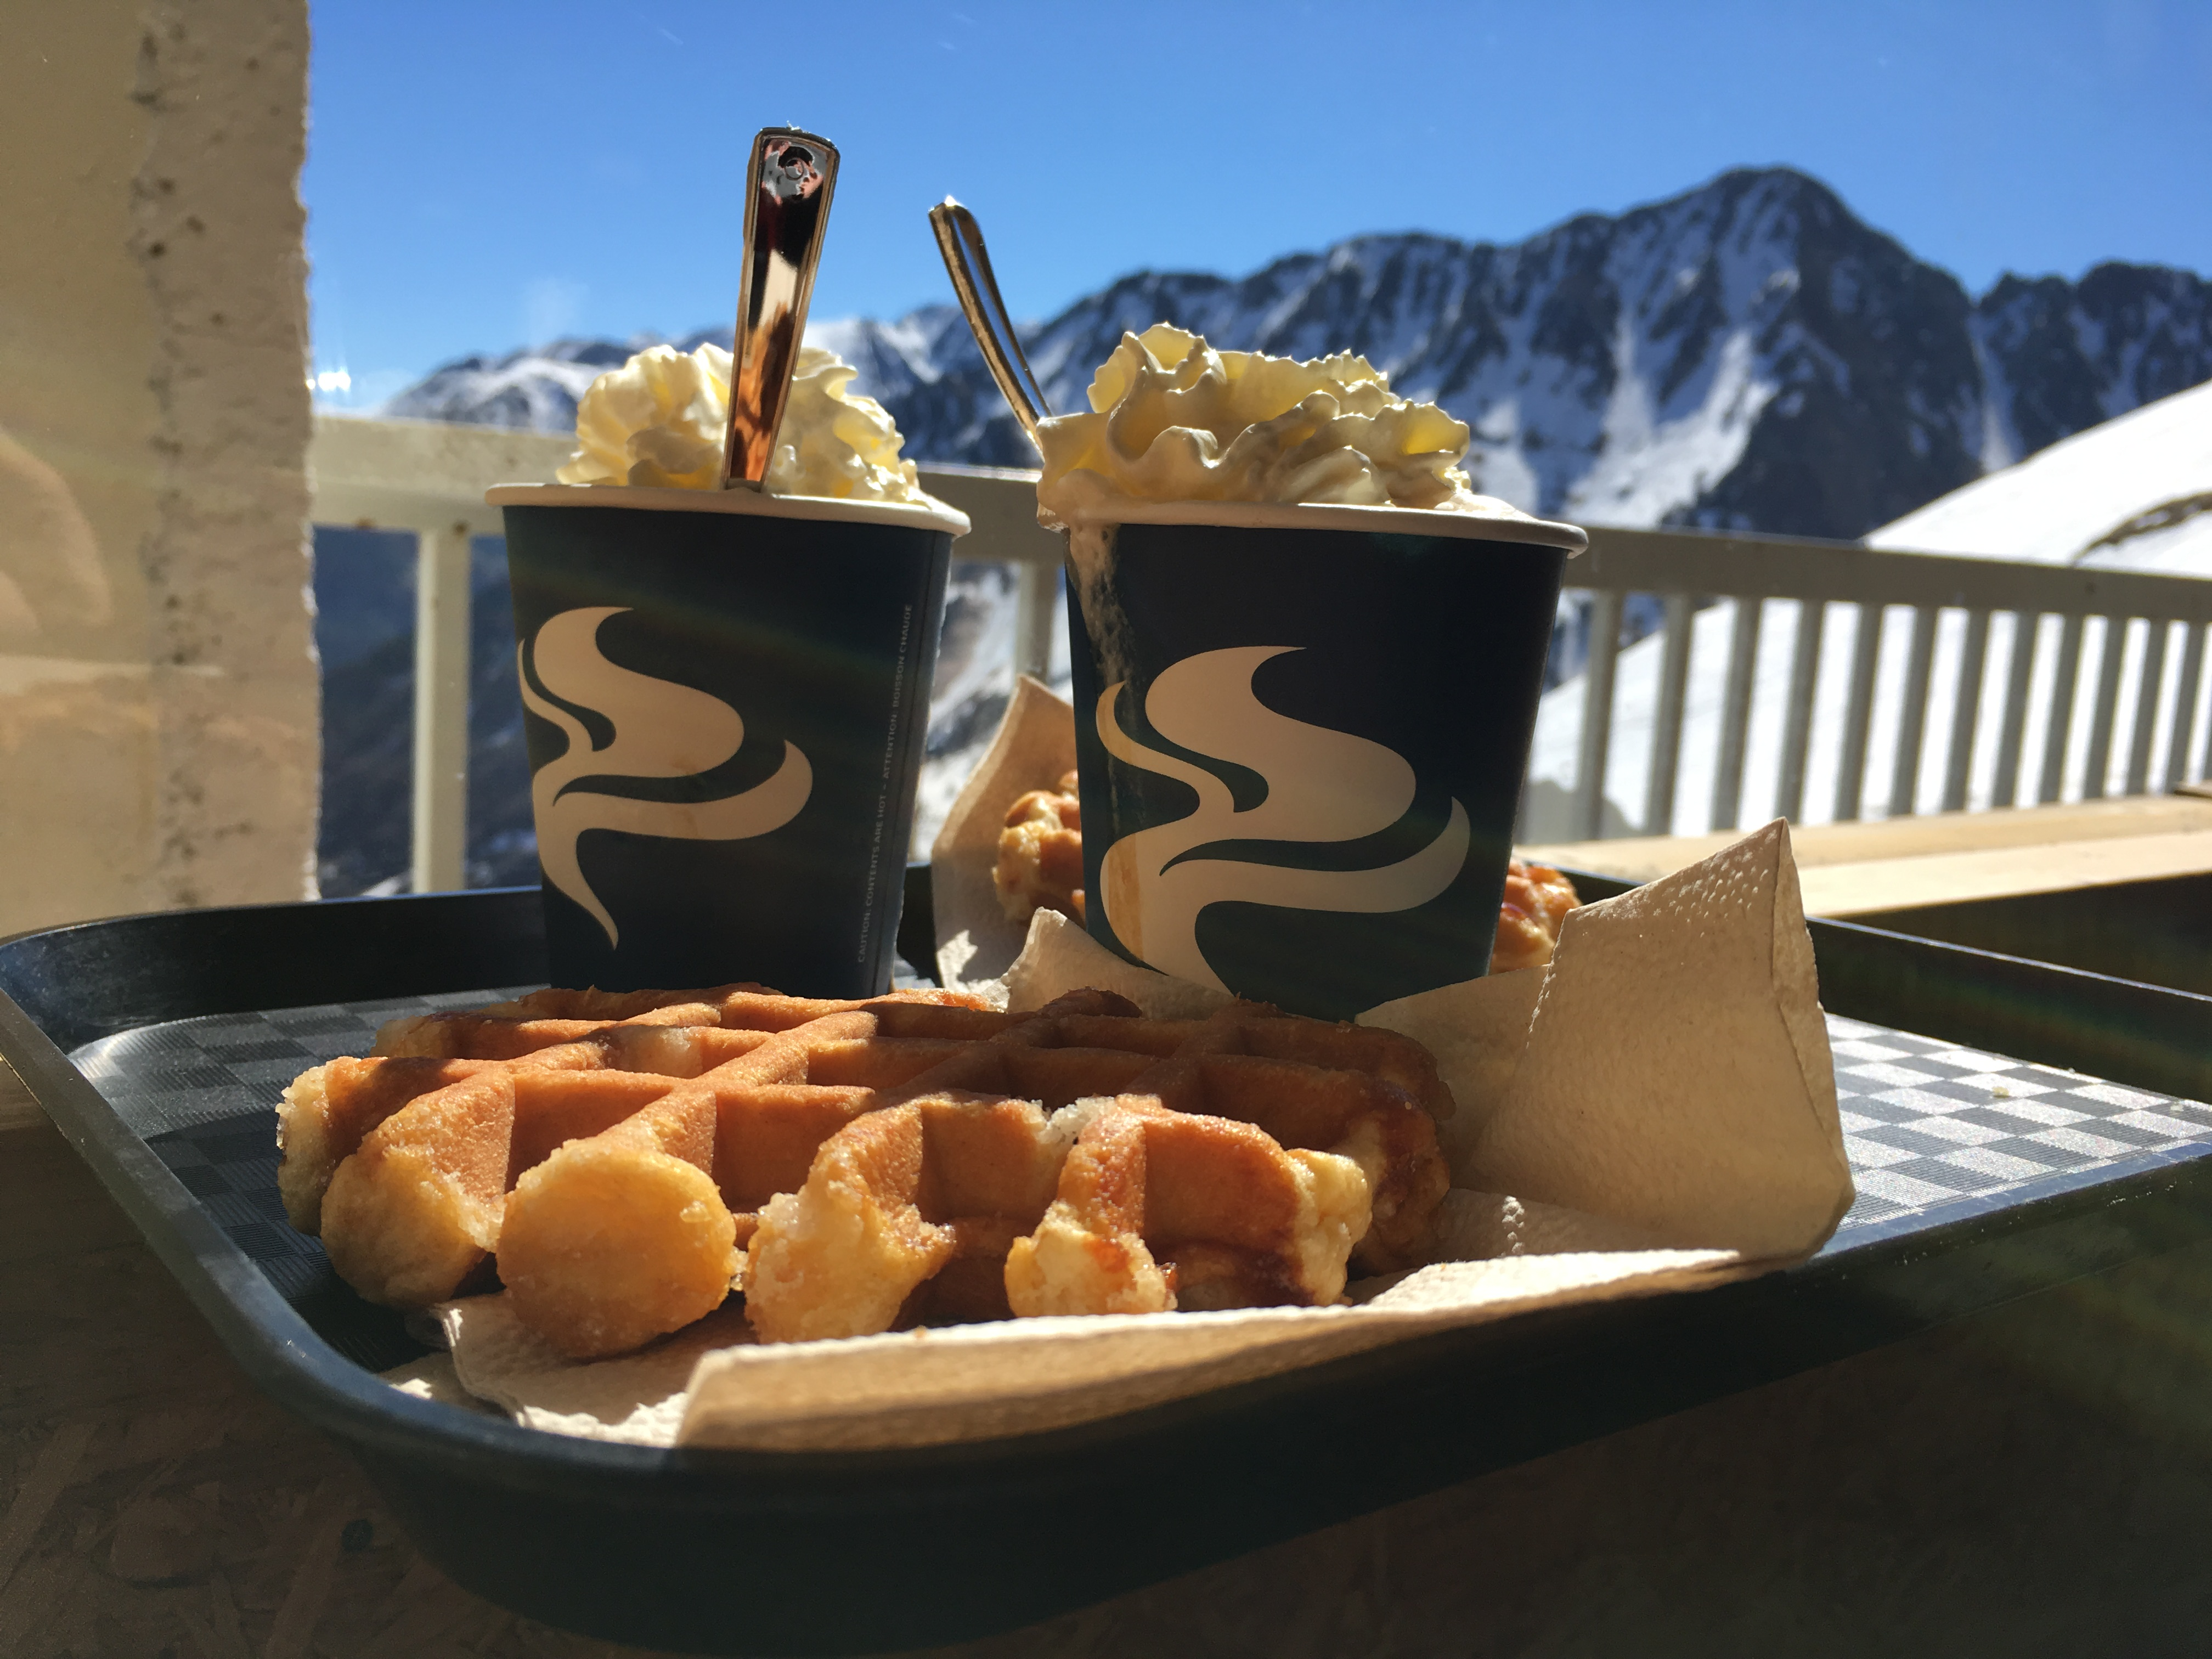 Waffles are cream topped hot chocolates in the snowy mountains